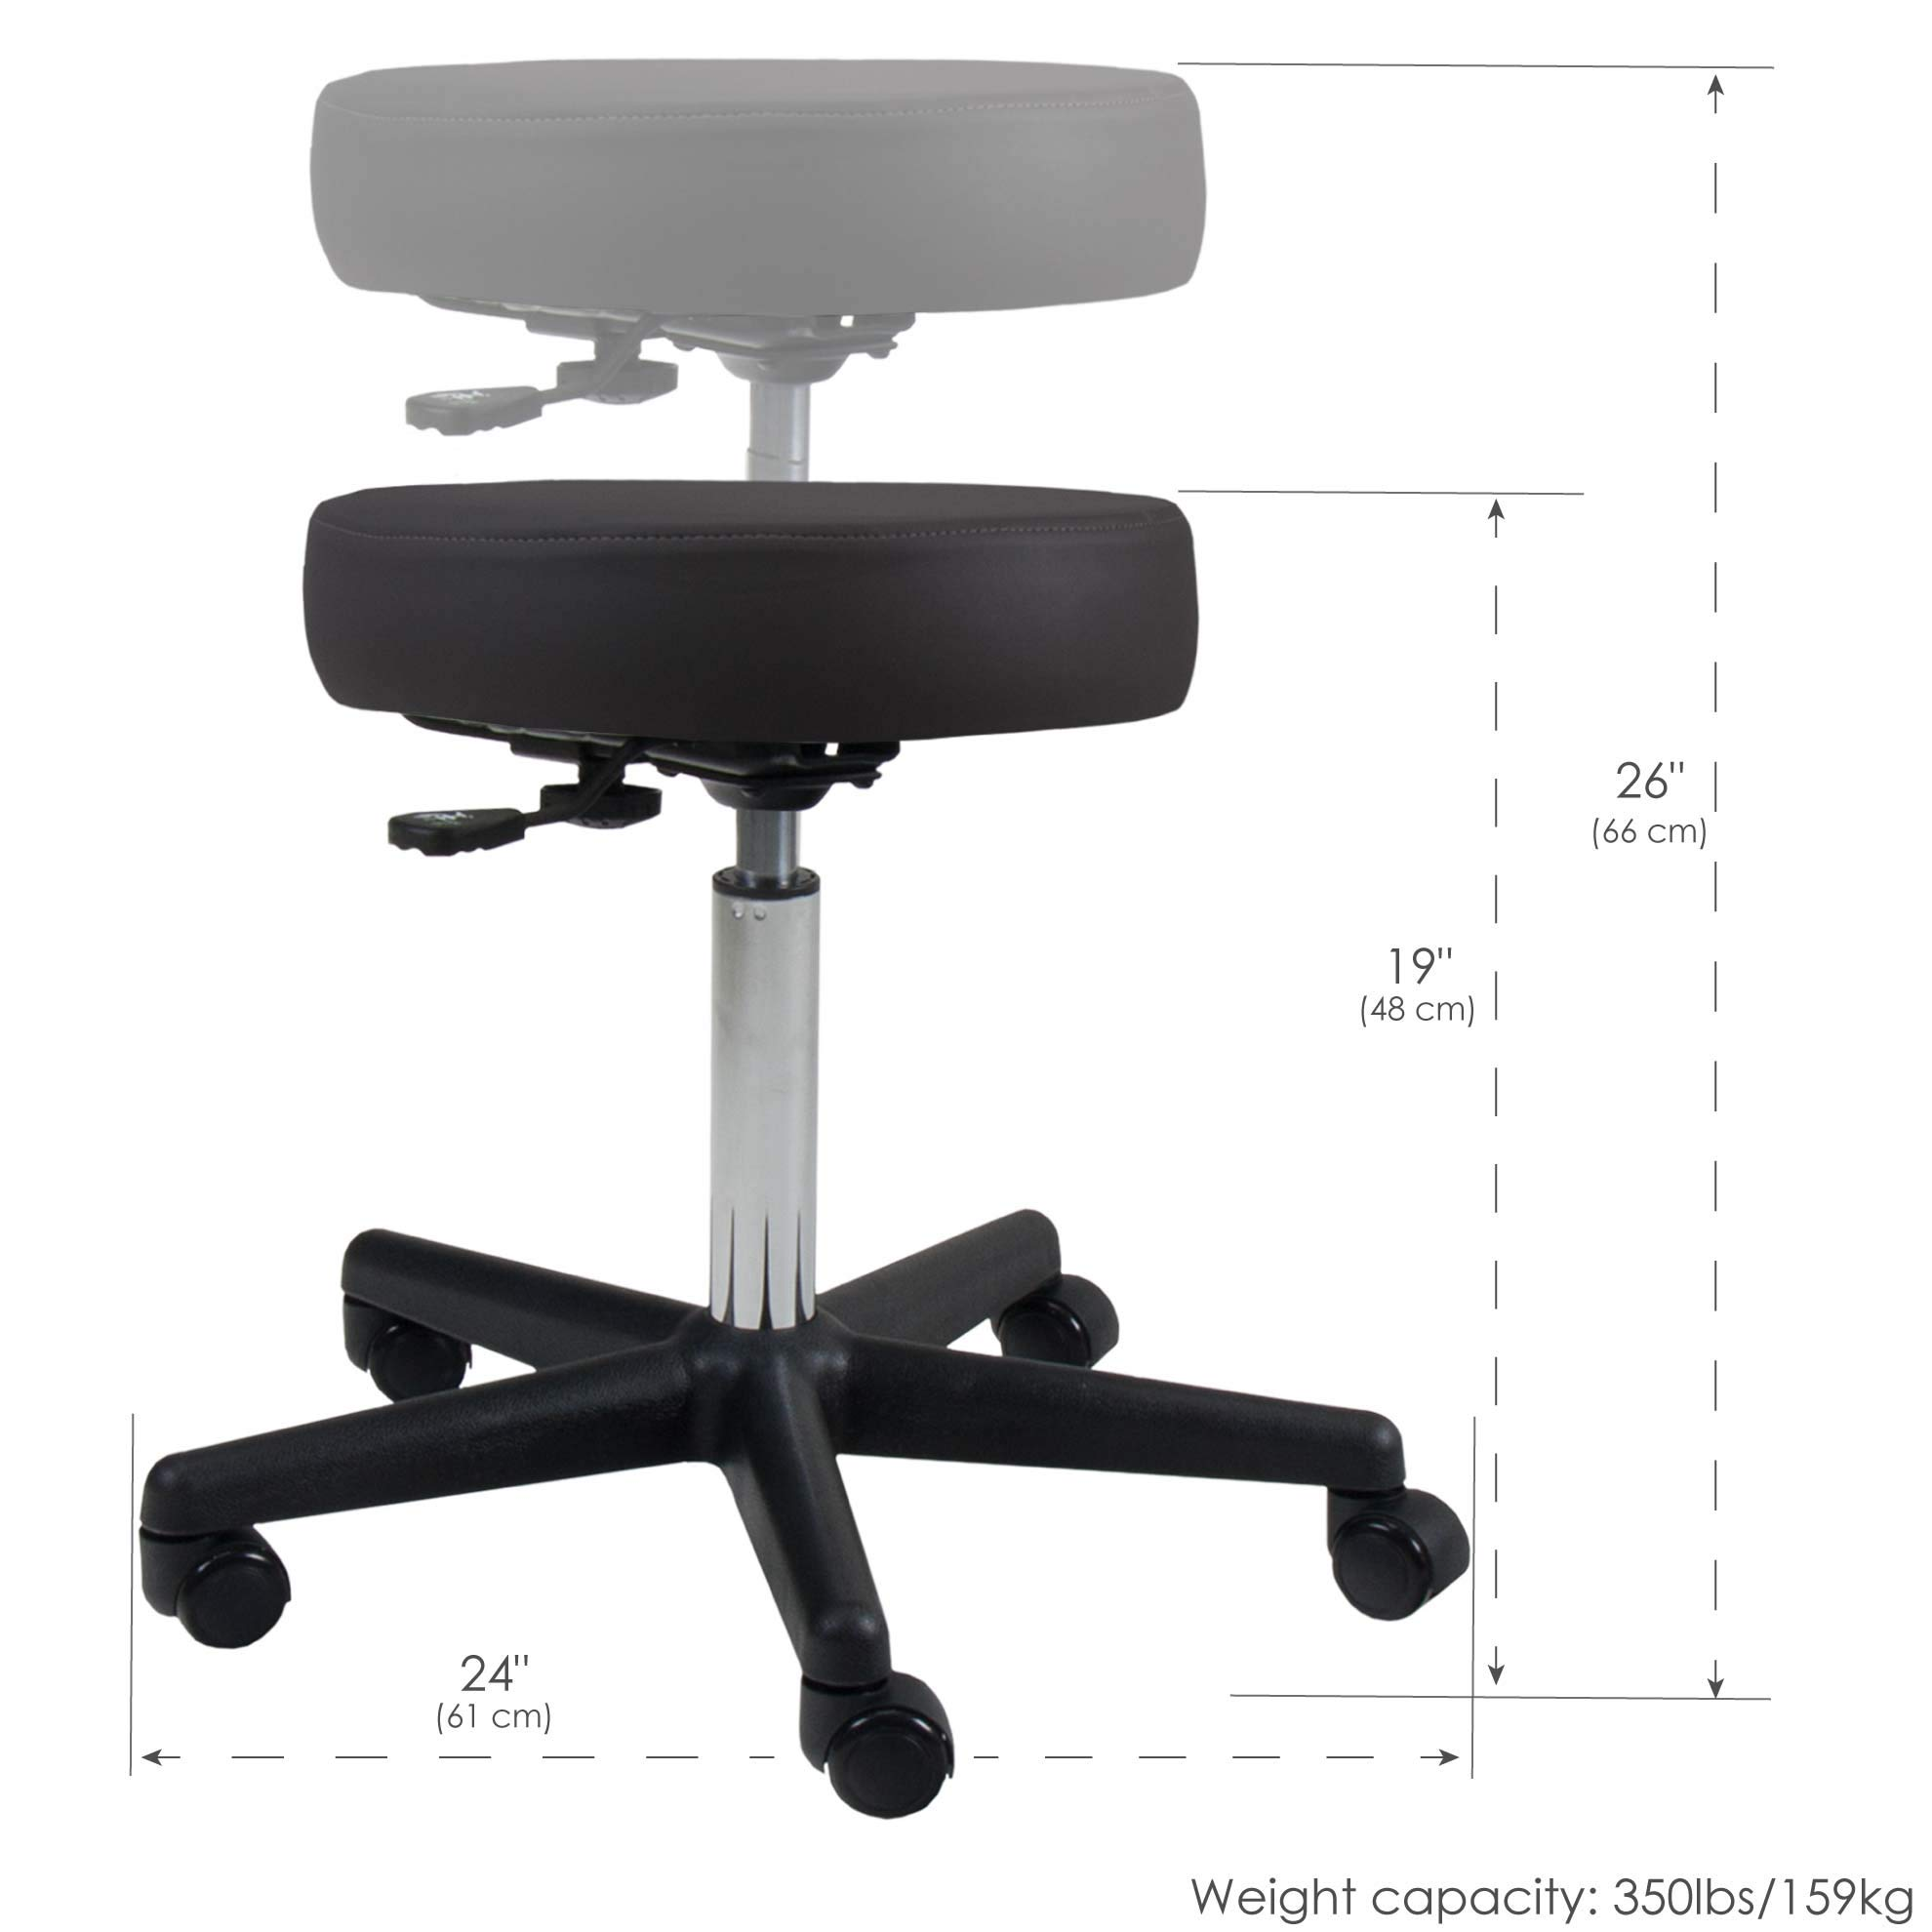 EARTHLITE Pneumatic Rolling Stool - Commercial Grade, Adjustable, CFC-Free, No leaking - Spa, Massage & Medical Chair by EARTHLITE